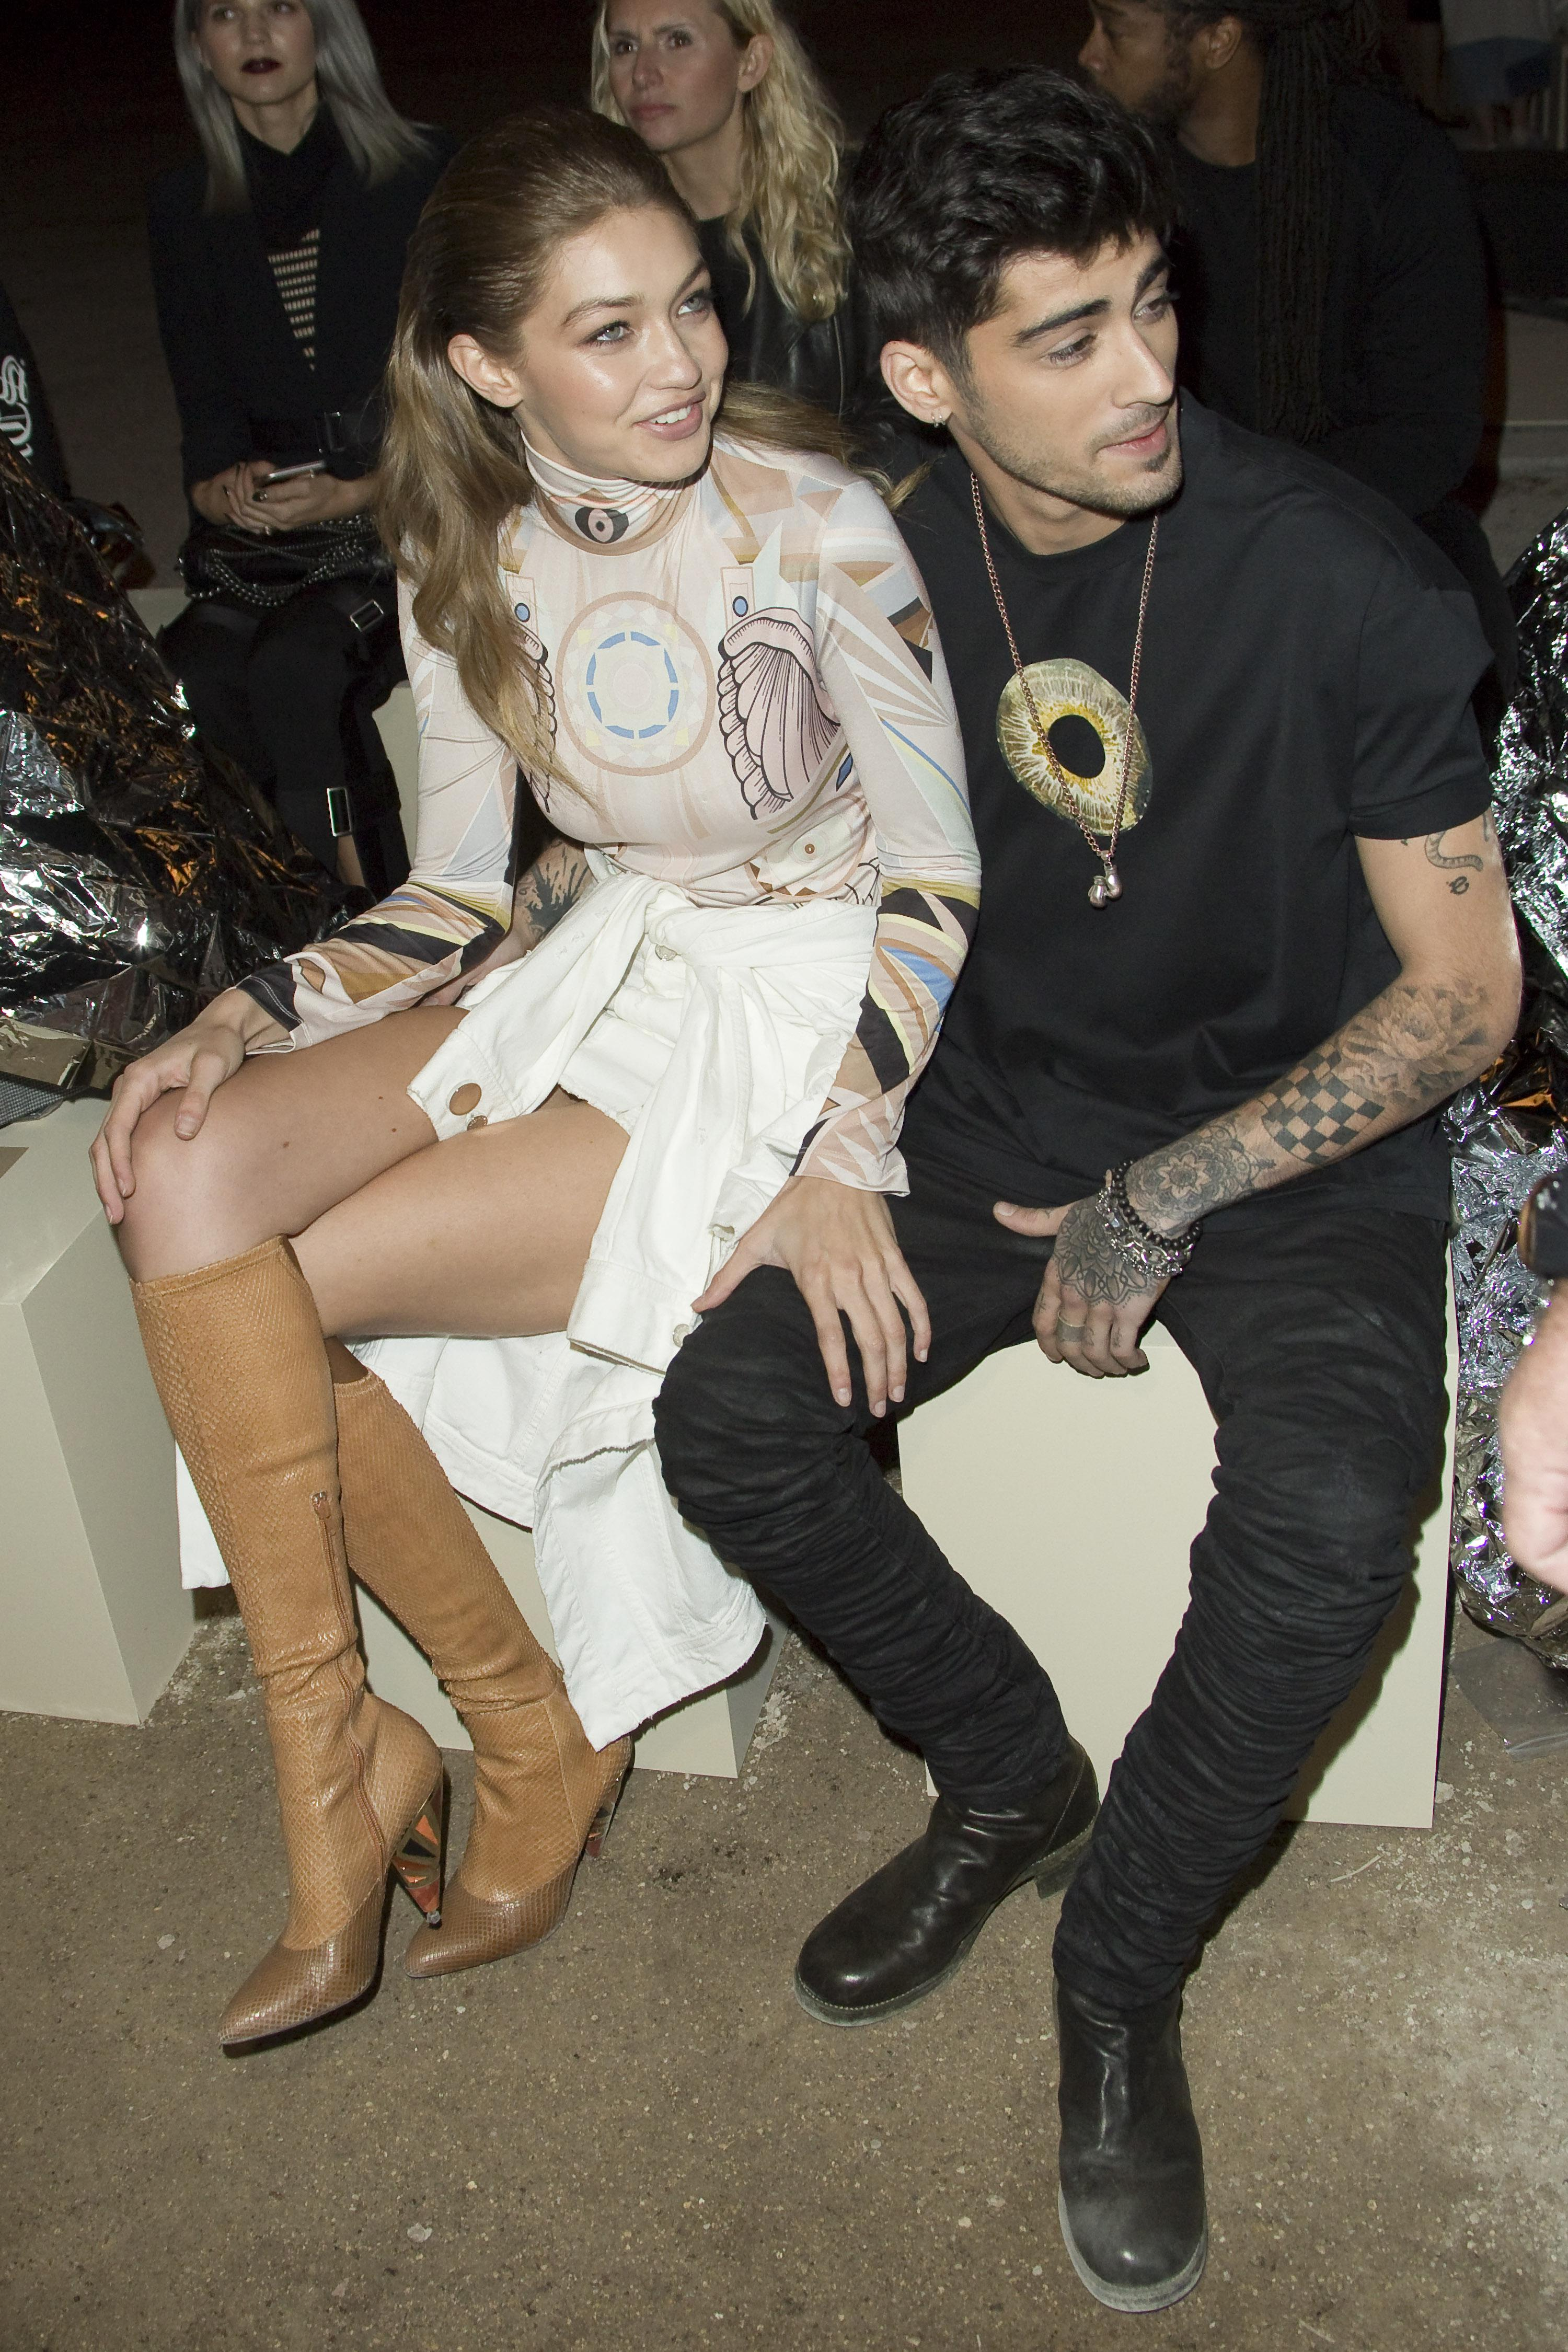 Gigi Hadid Reportedly Turns Down Marriage Proposal from ZaynMalik